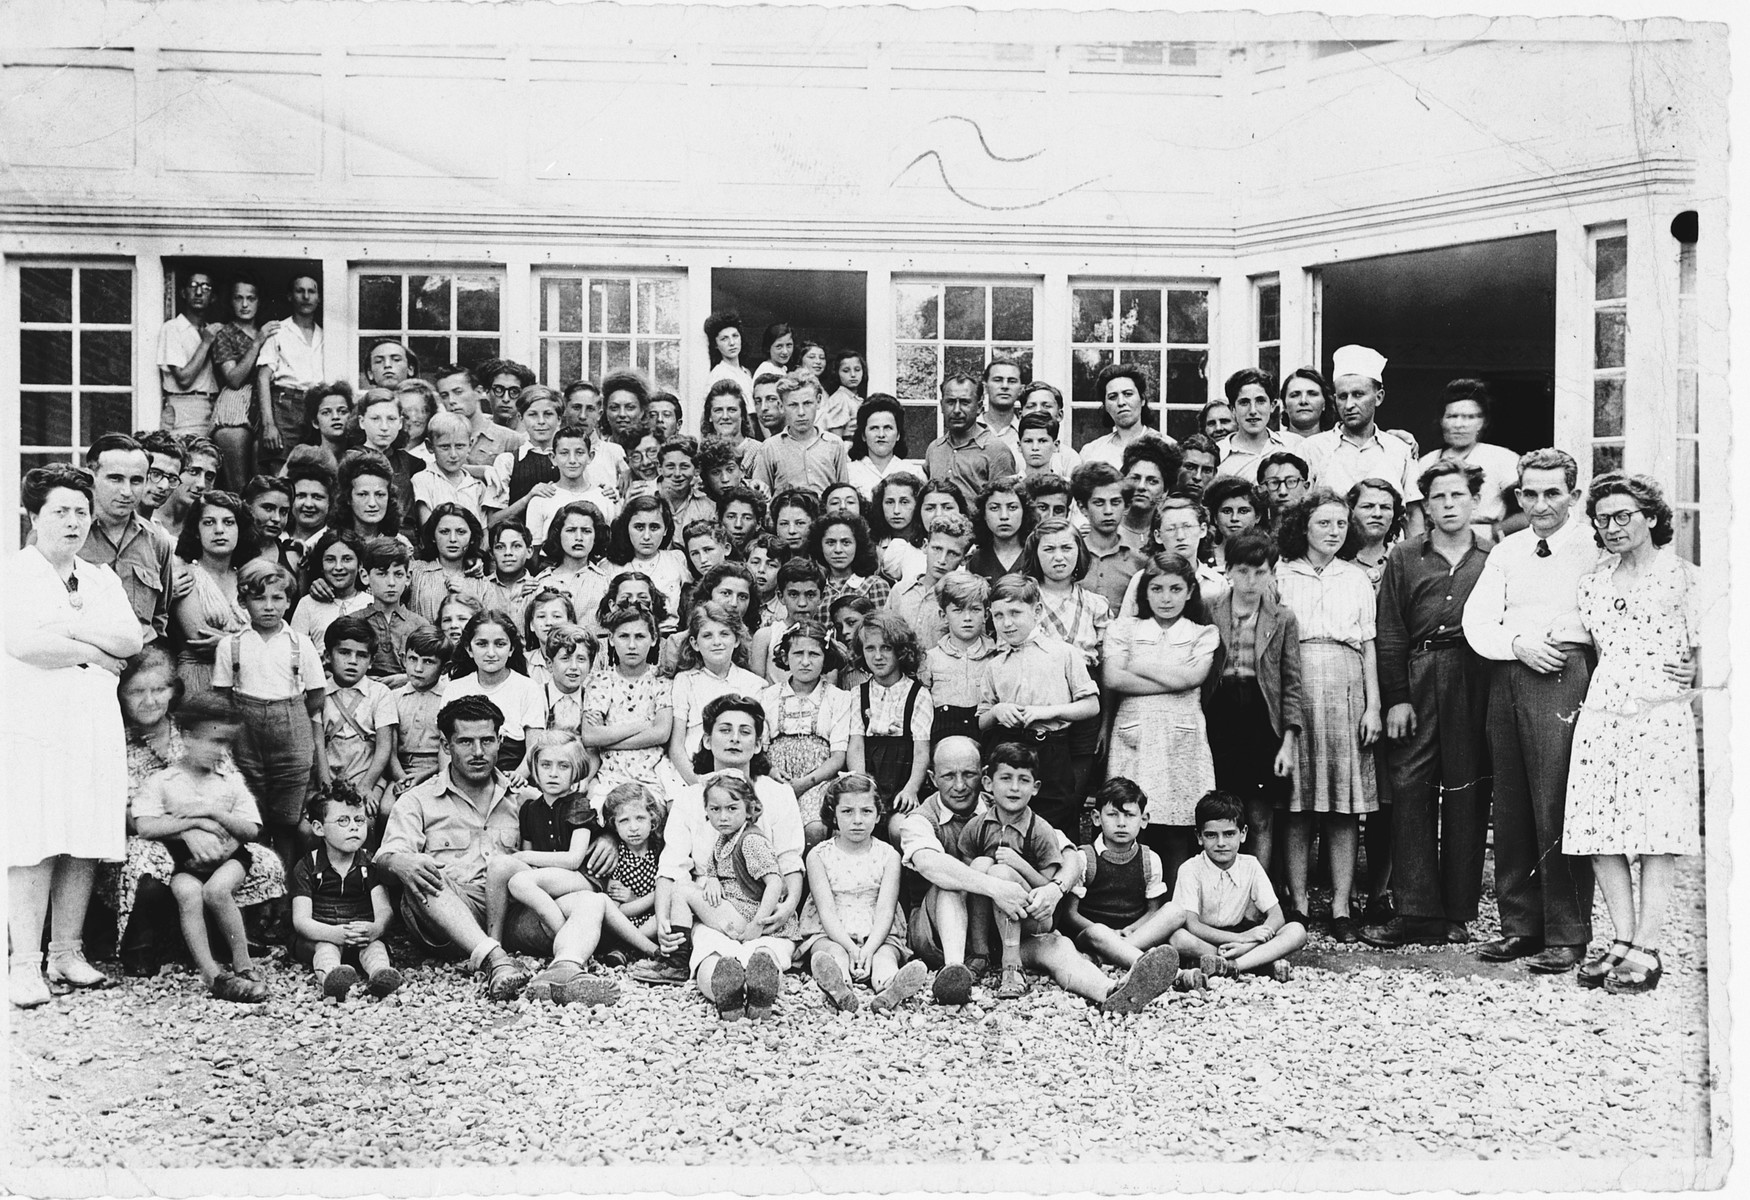 Staff and children of the Nahum Aronson children's home in Les Andelys, France.